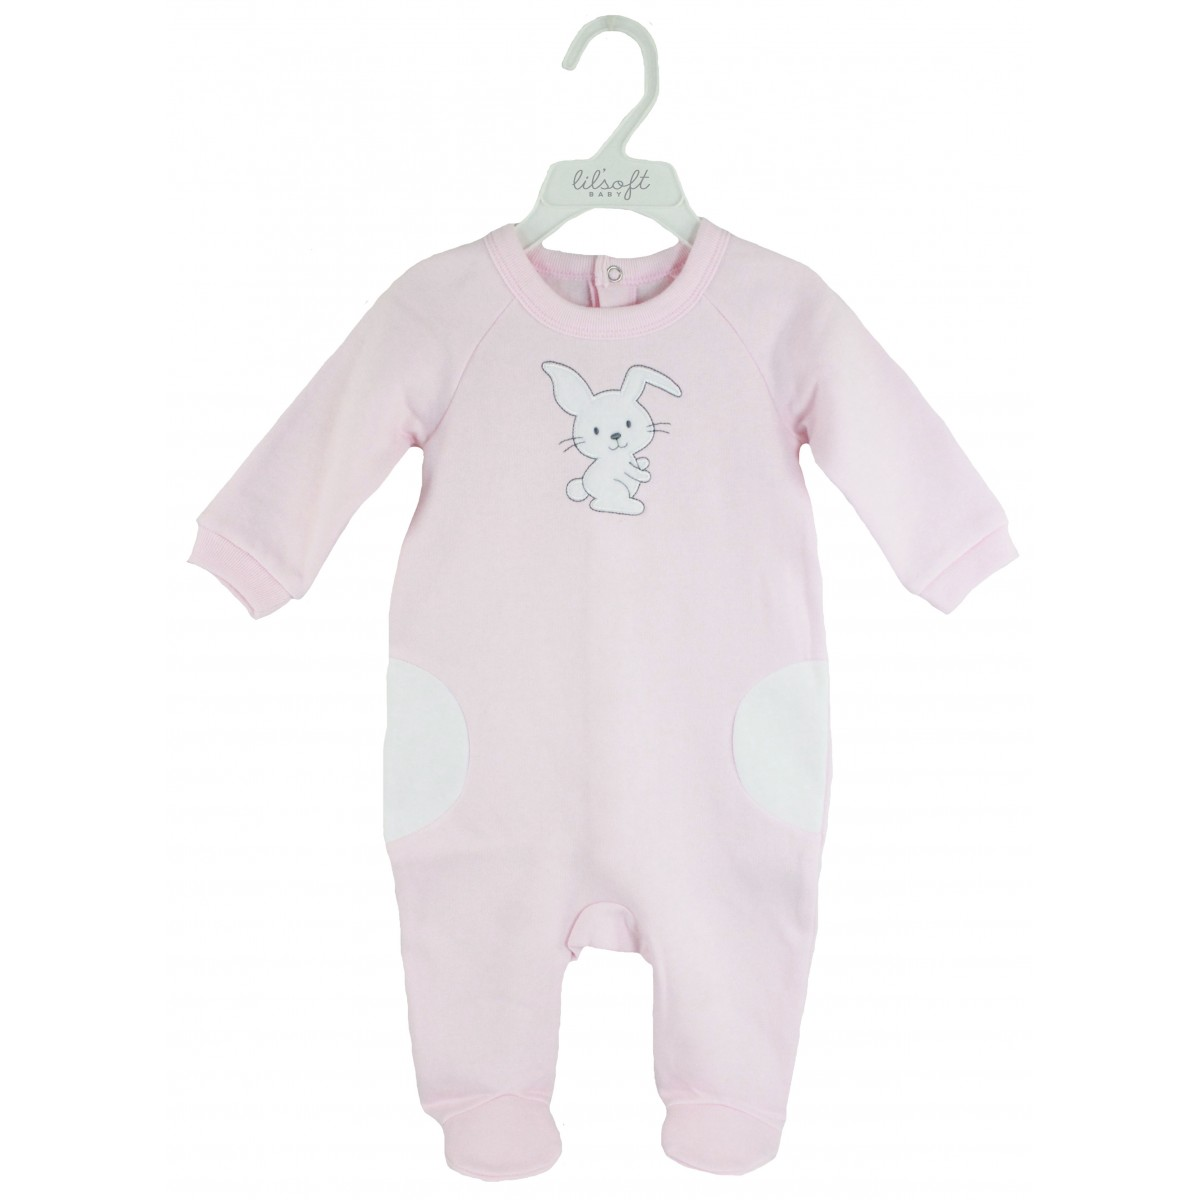 Applying this Baby Merlin's Magic Sleepsuit promo codes and receive huge price discounts during this sale. Gift card for only $ Some exclusions and restrictions may apply, see .